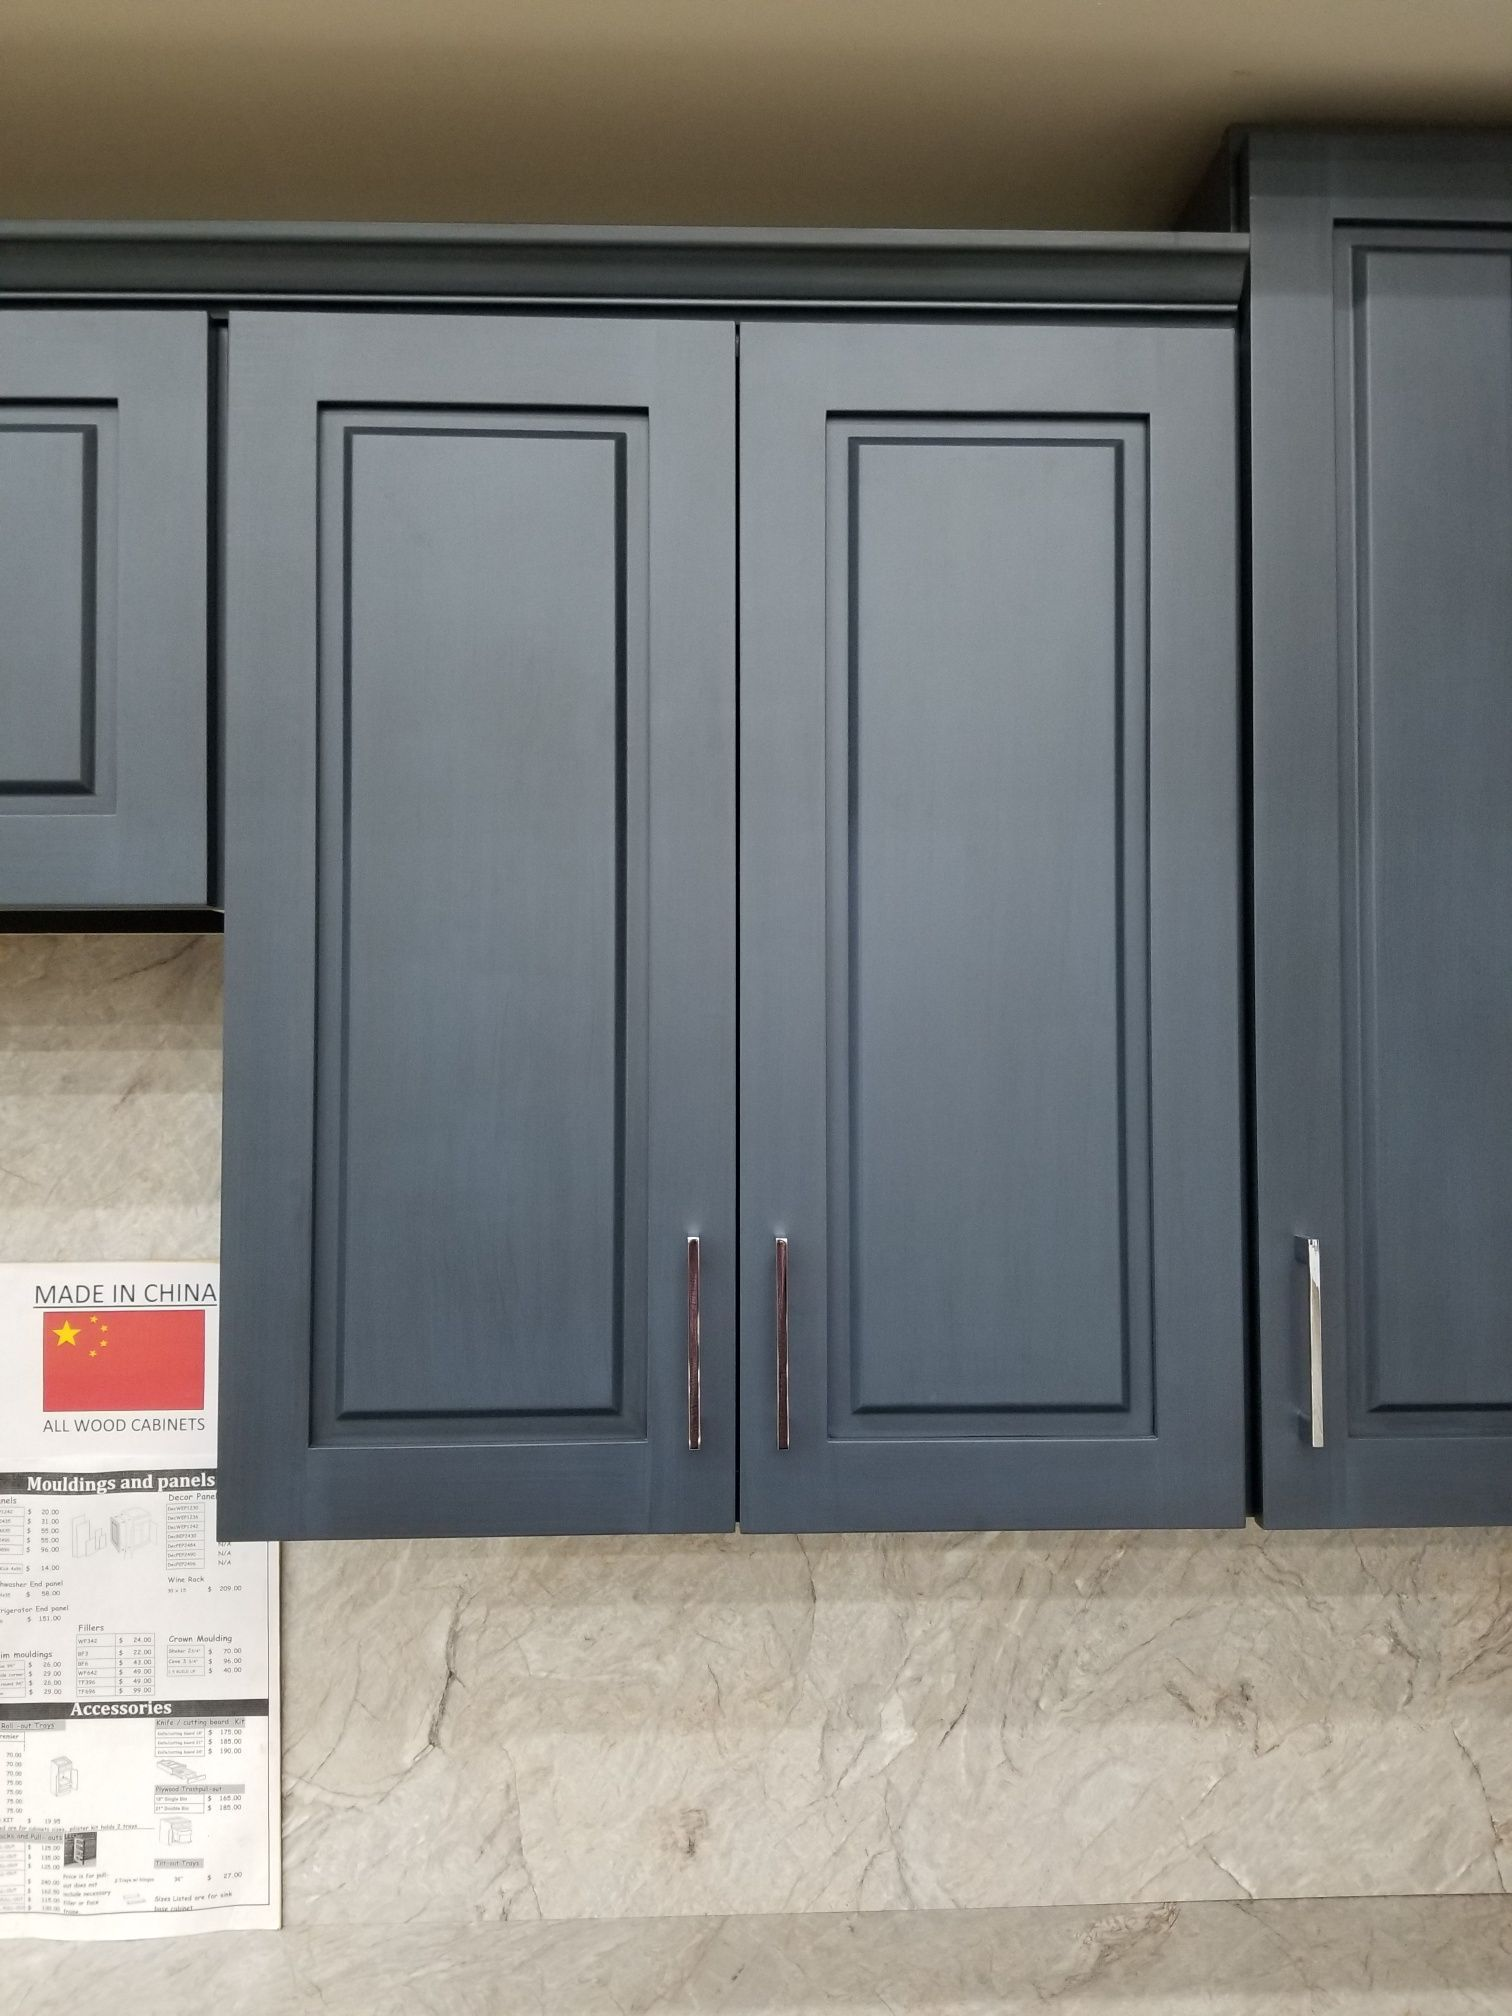 Mystique Blue Kitchen Cabinets Builders Surplus Wholesale Kitchen And Bathroom Cabinets In Los Ang Buy Kitchen Cabinets Blue Cabinets Blue Kitchen Cabinets